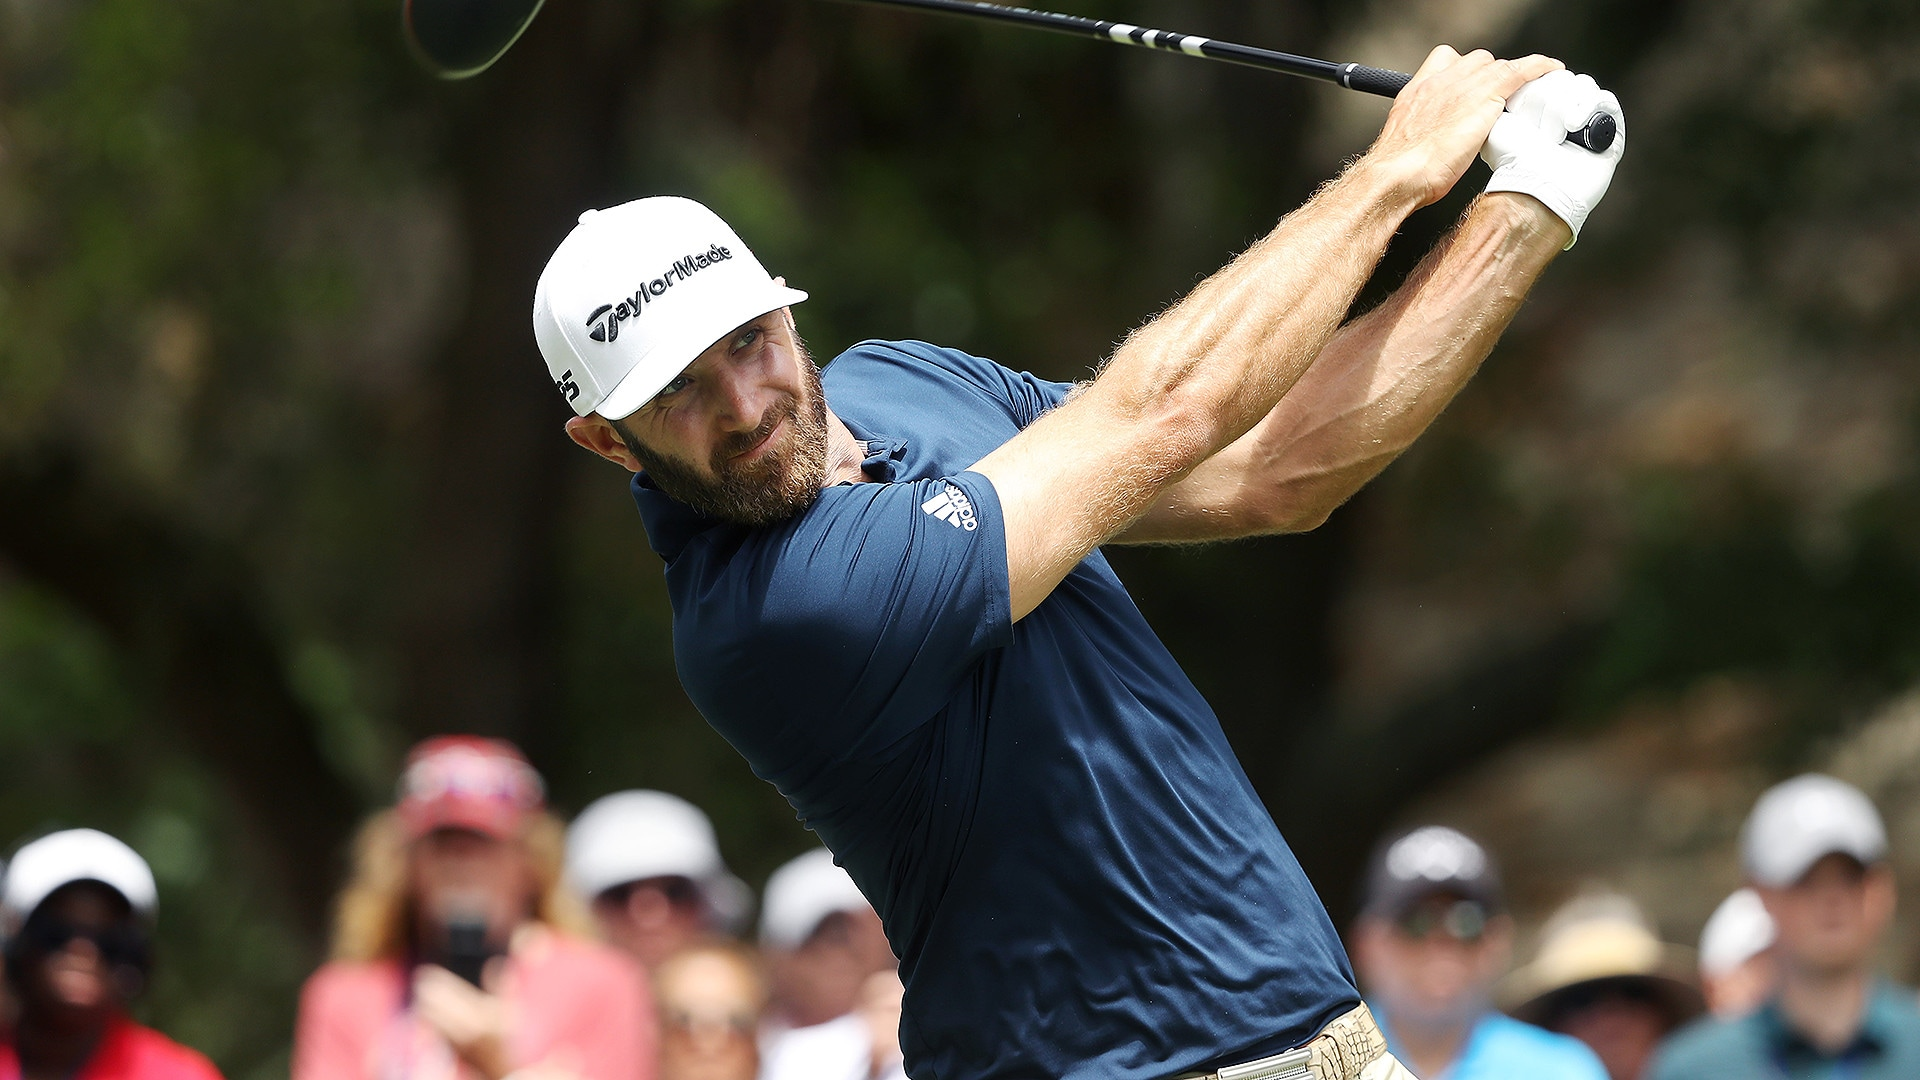 Shane Lowry still leads at weather affected RBC Heritage on PGA Tour